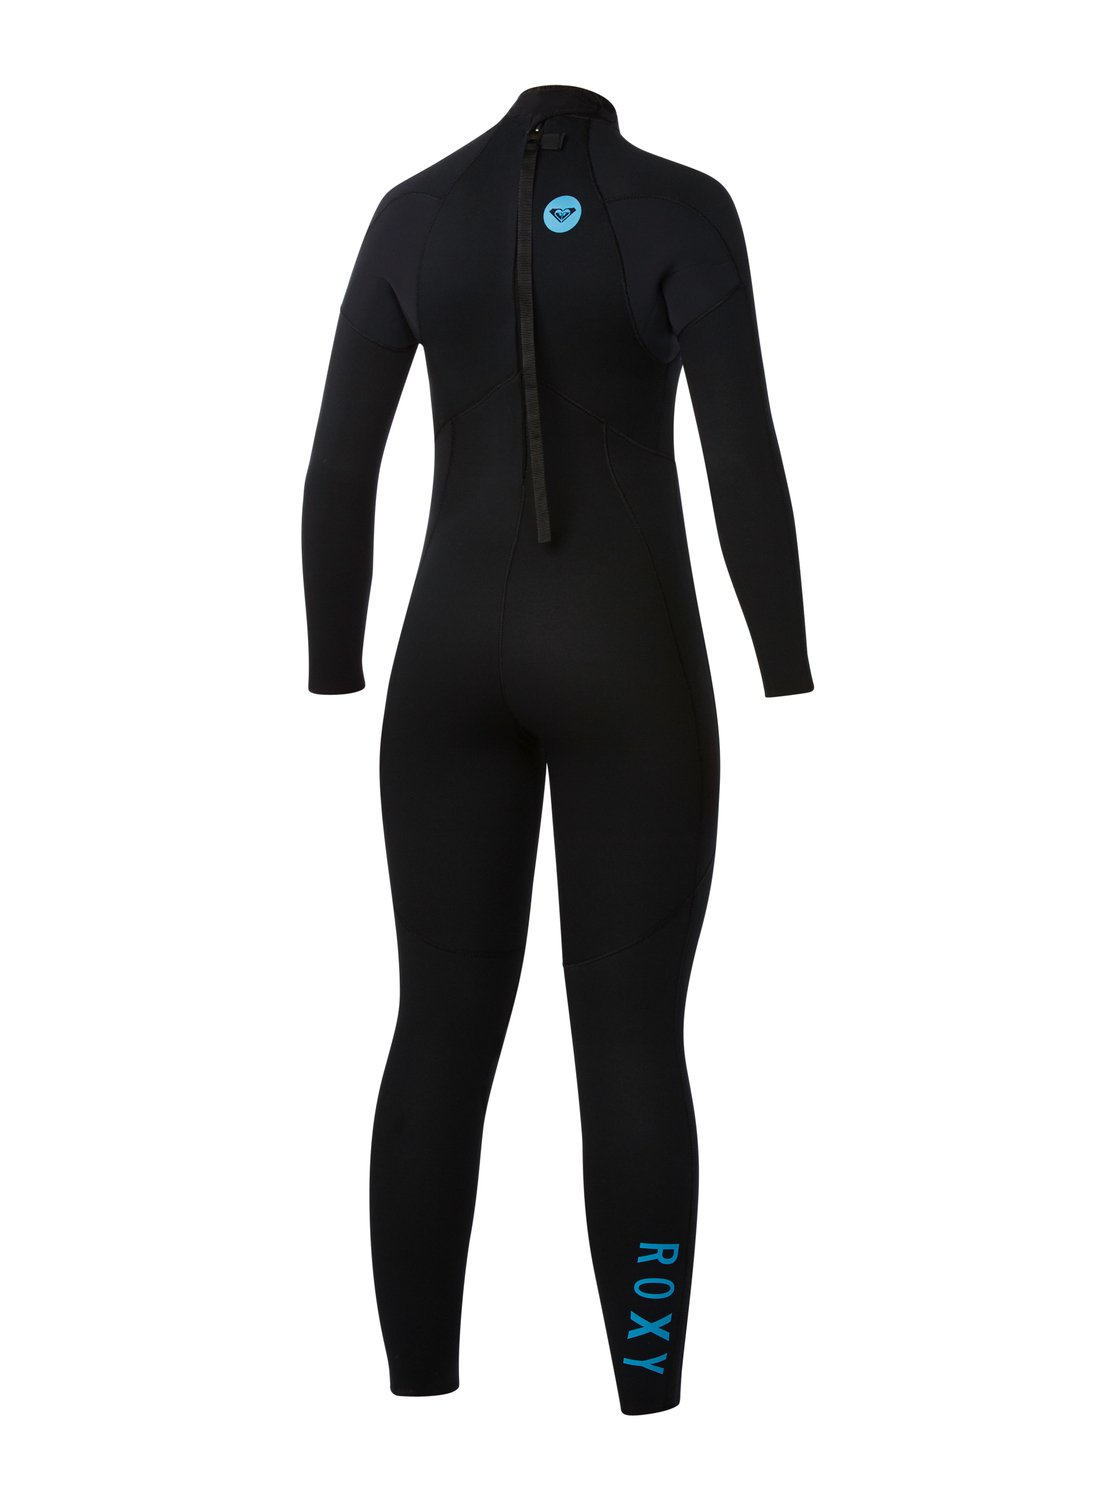 Enduro 5/4/3 mm Fullsuit Back Zip ARJW103010 | Roxy